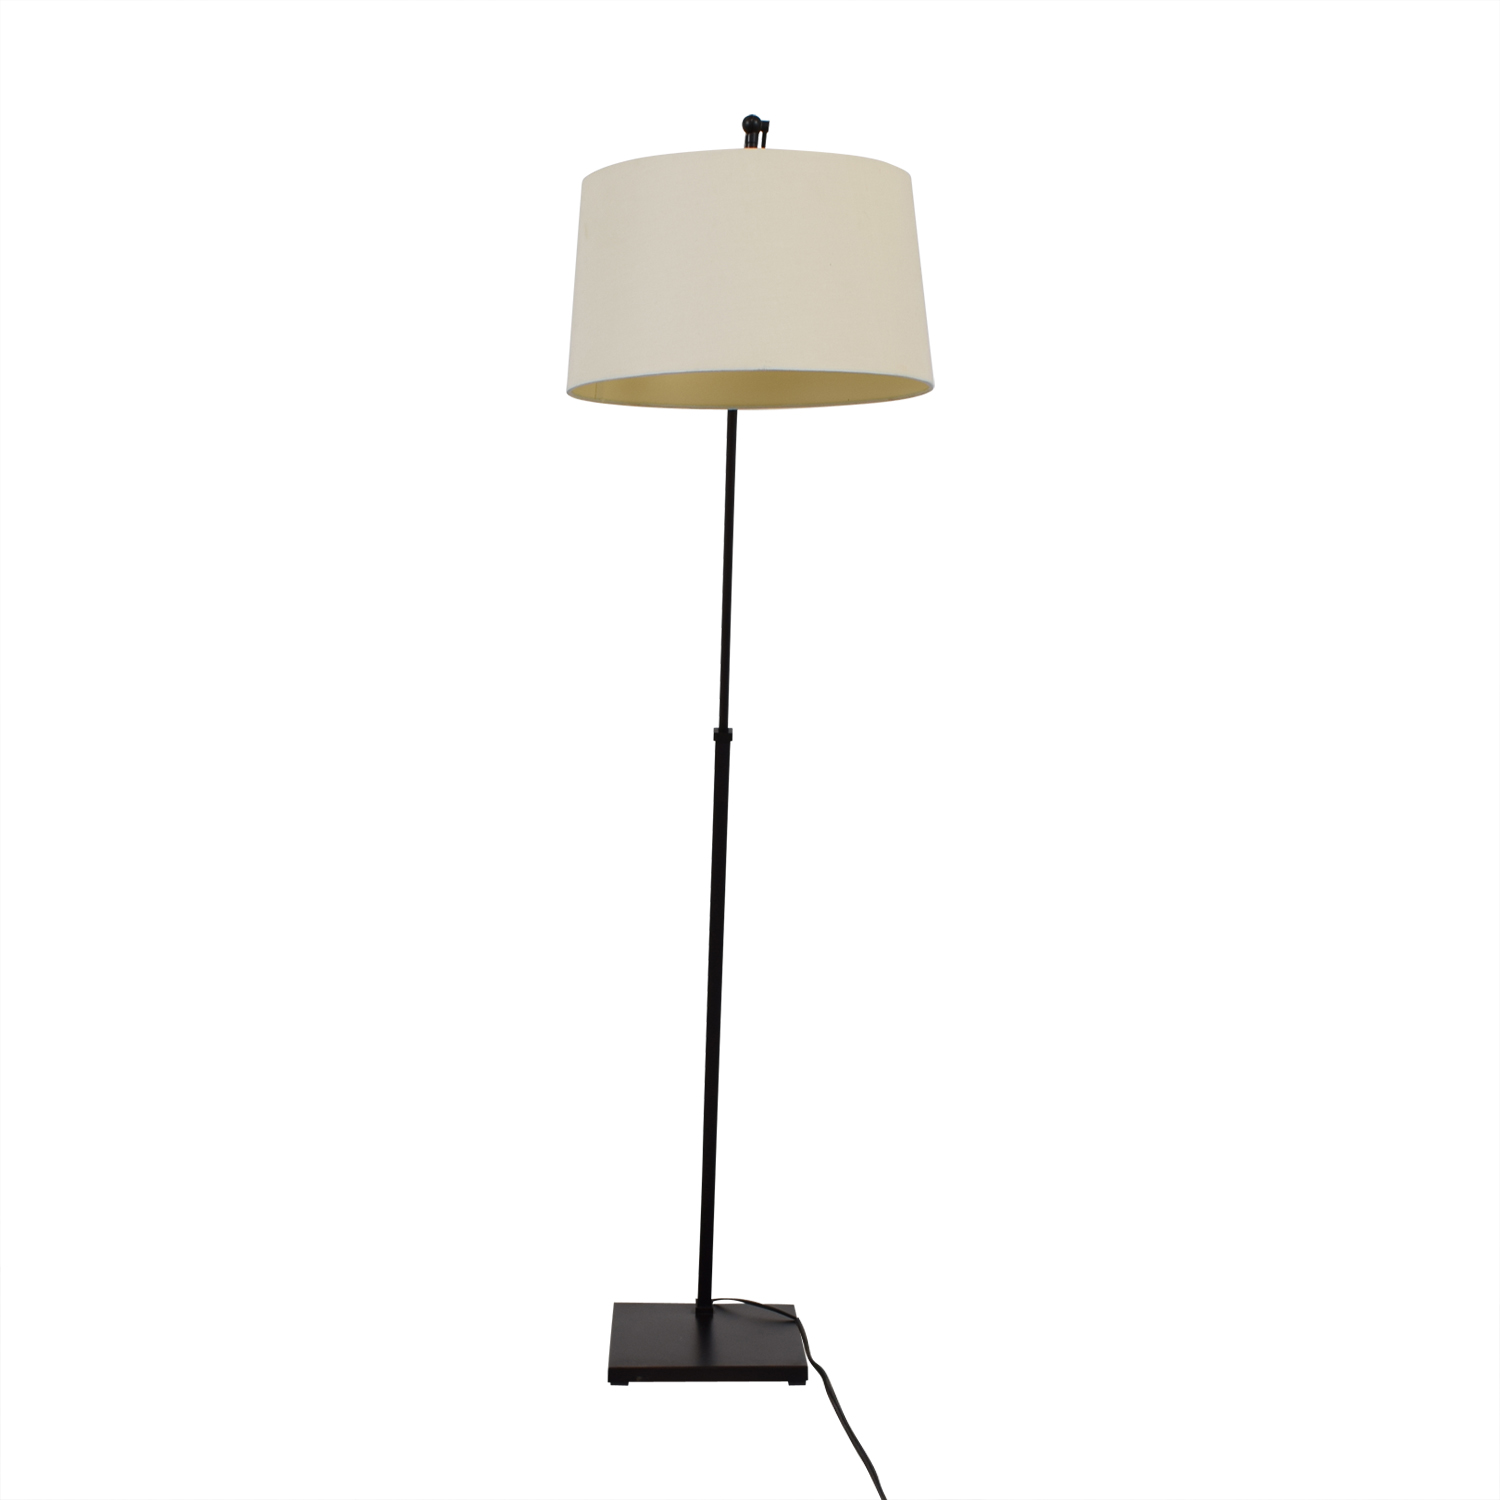 Crate & Barrel Crate & Barrel Dexter Arc Floor Lamp with White Shade on sale